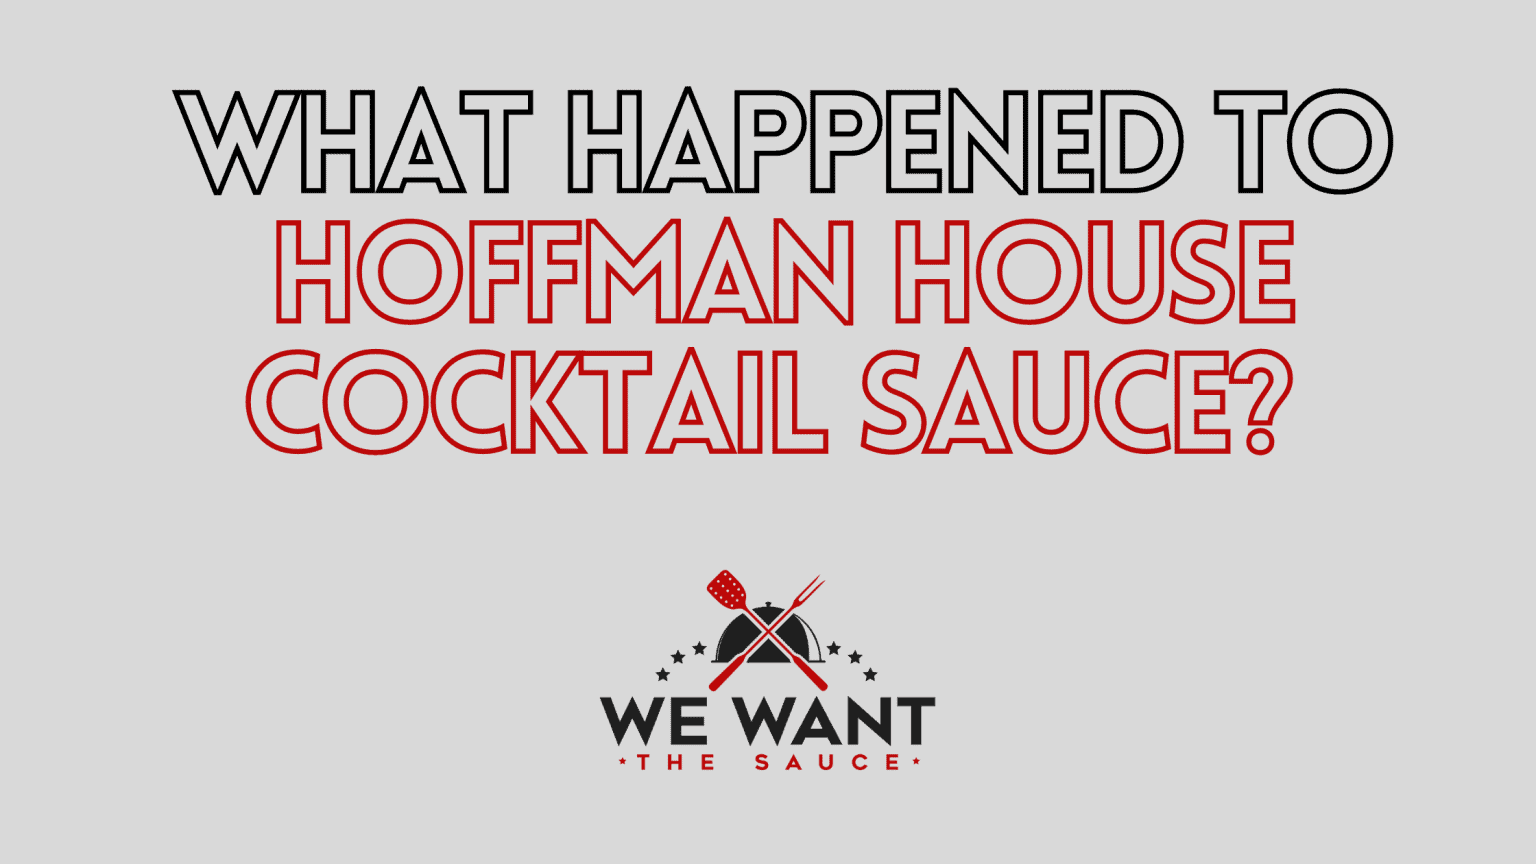 What Happened To Hoffman House Cocktail Sauce?